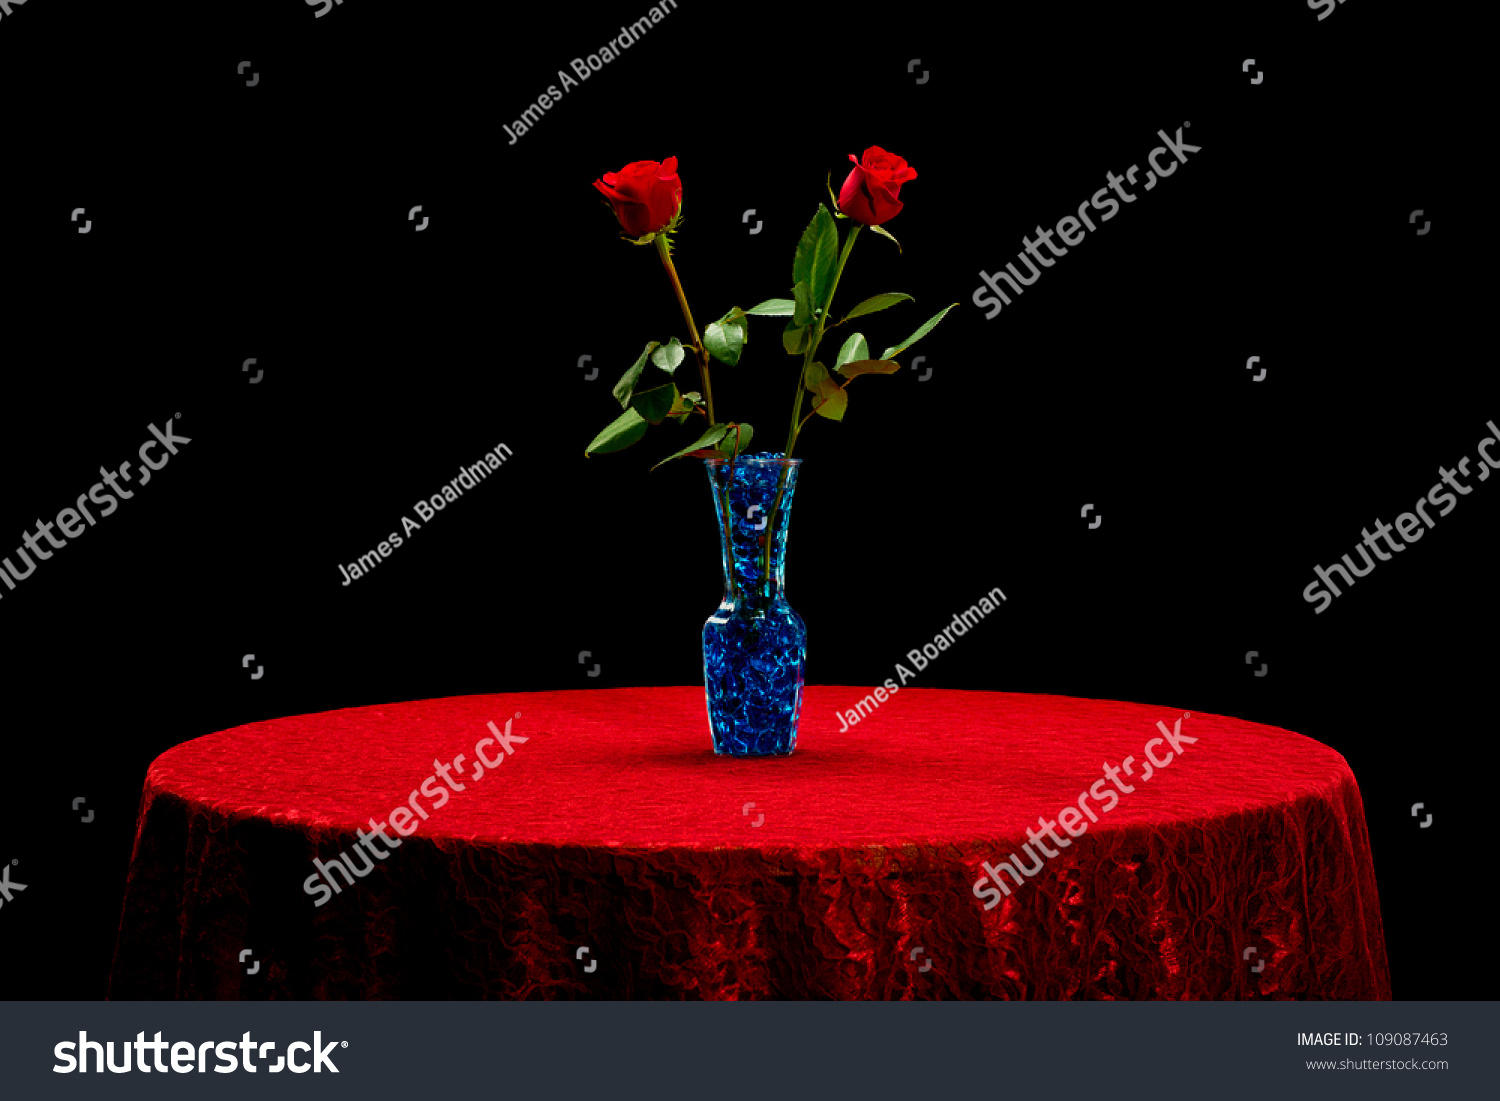 Two Red Roses In A Vase With Blue Stones On A Red Lace Tablecloth Isolated  On